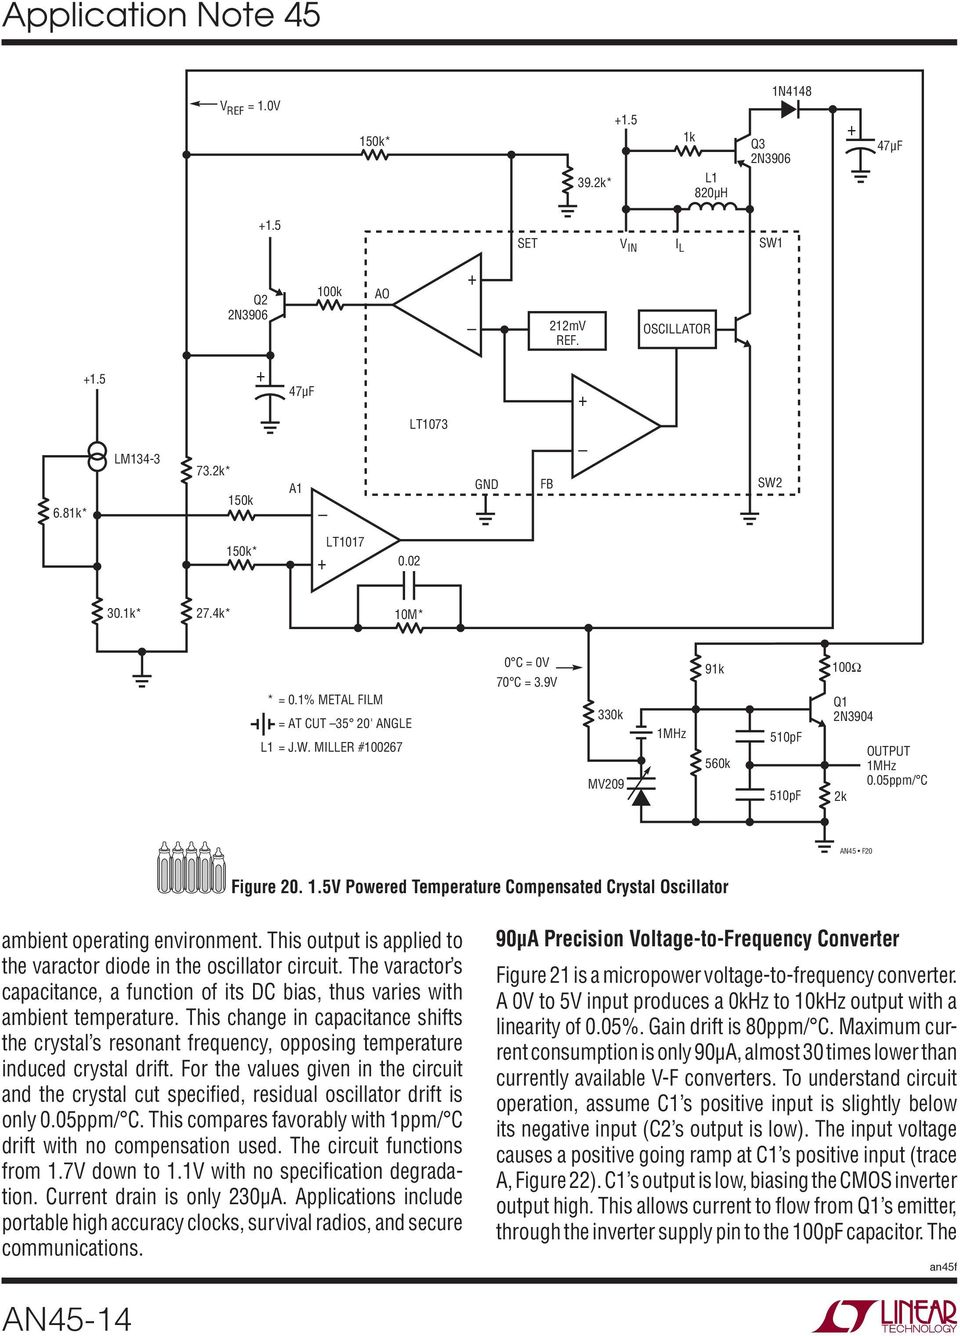 Application Note 45 June Measurement And Control Circuit Collection 20 Ma Current Loop Measuring Circuits Basics I Industrial This Change In Capacitance Shifts The Crystal S Resonant Frequency Opposing Temperature Induced Drift